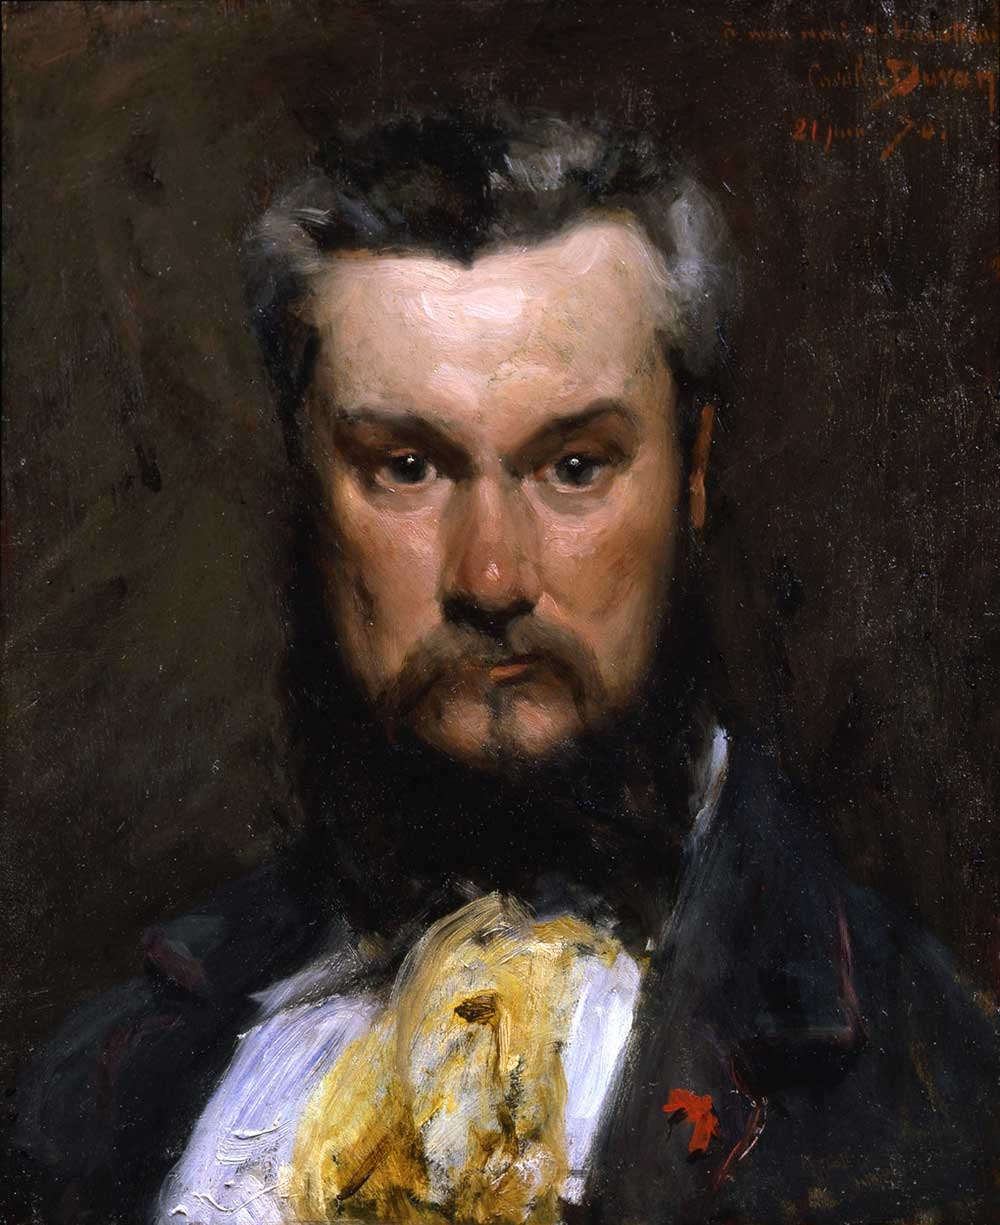 Carolus-Duran, Portrait of Hector Hanoteau, 1870, oil on panel, 23.5 x 20 inches